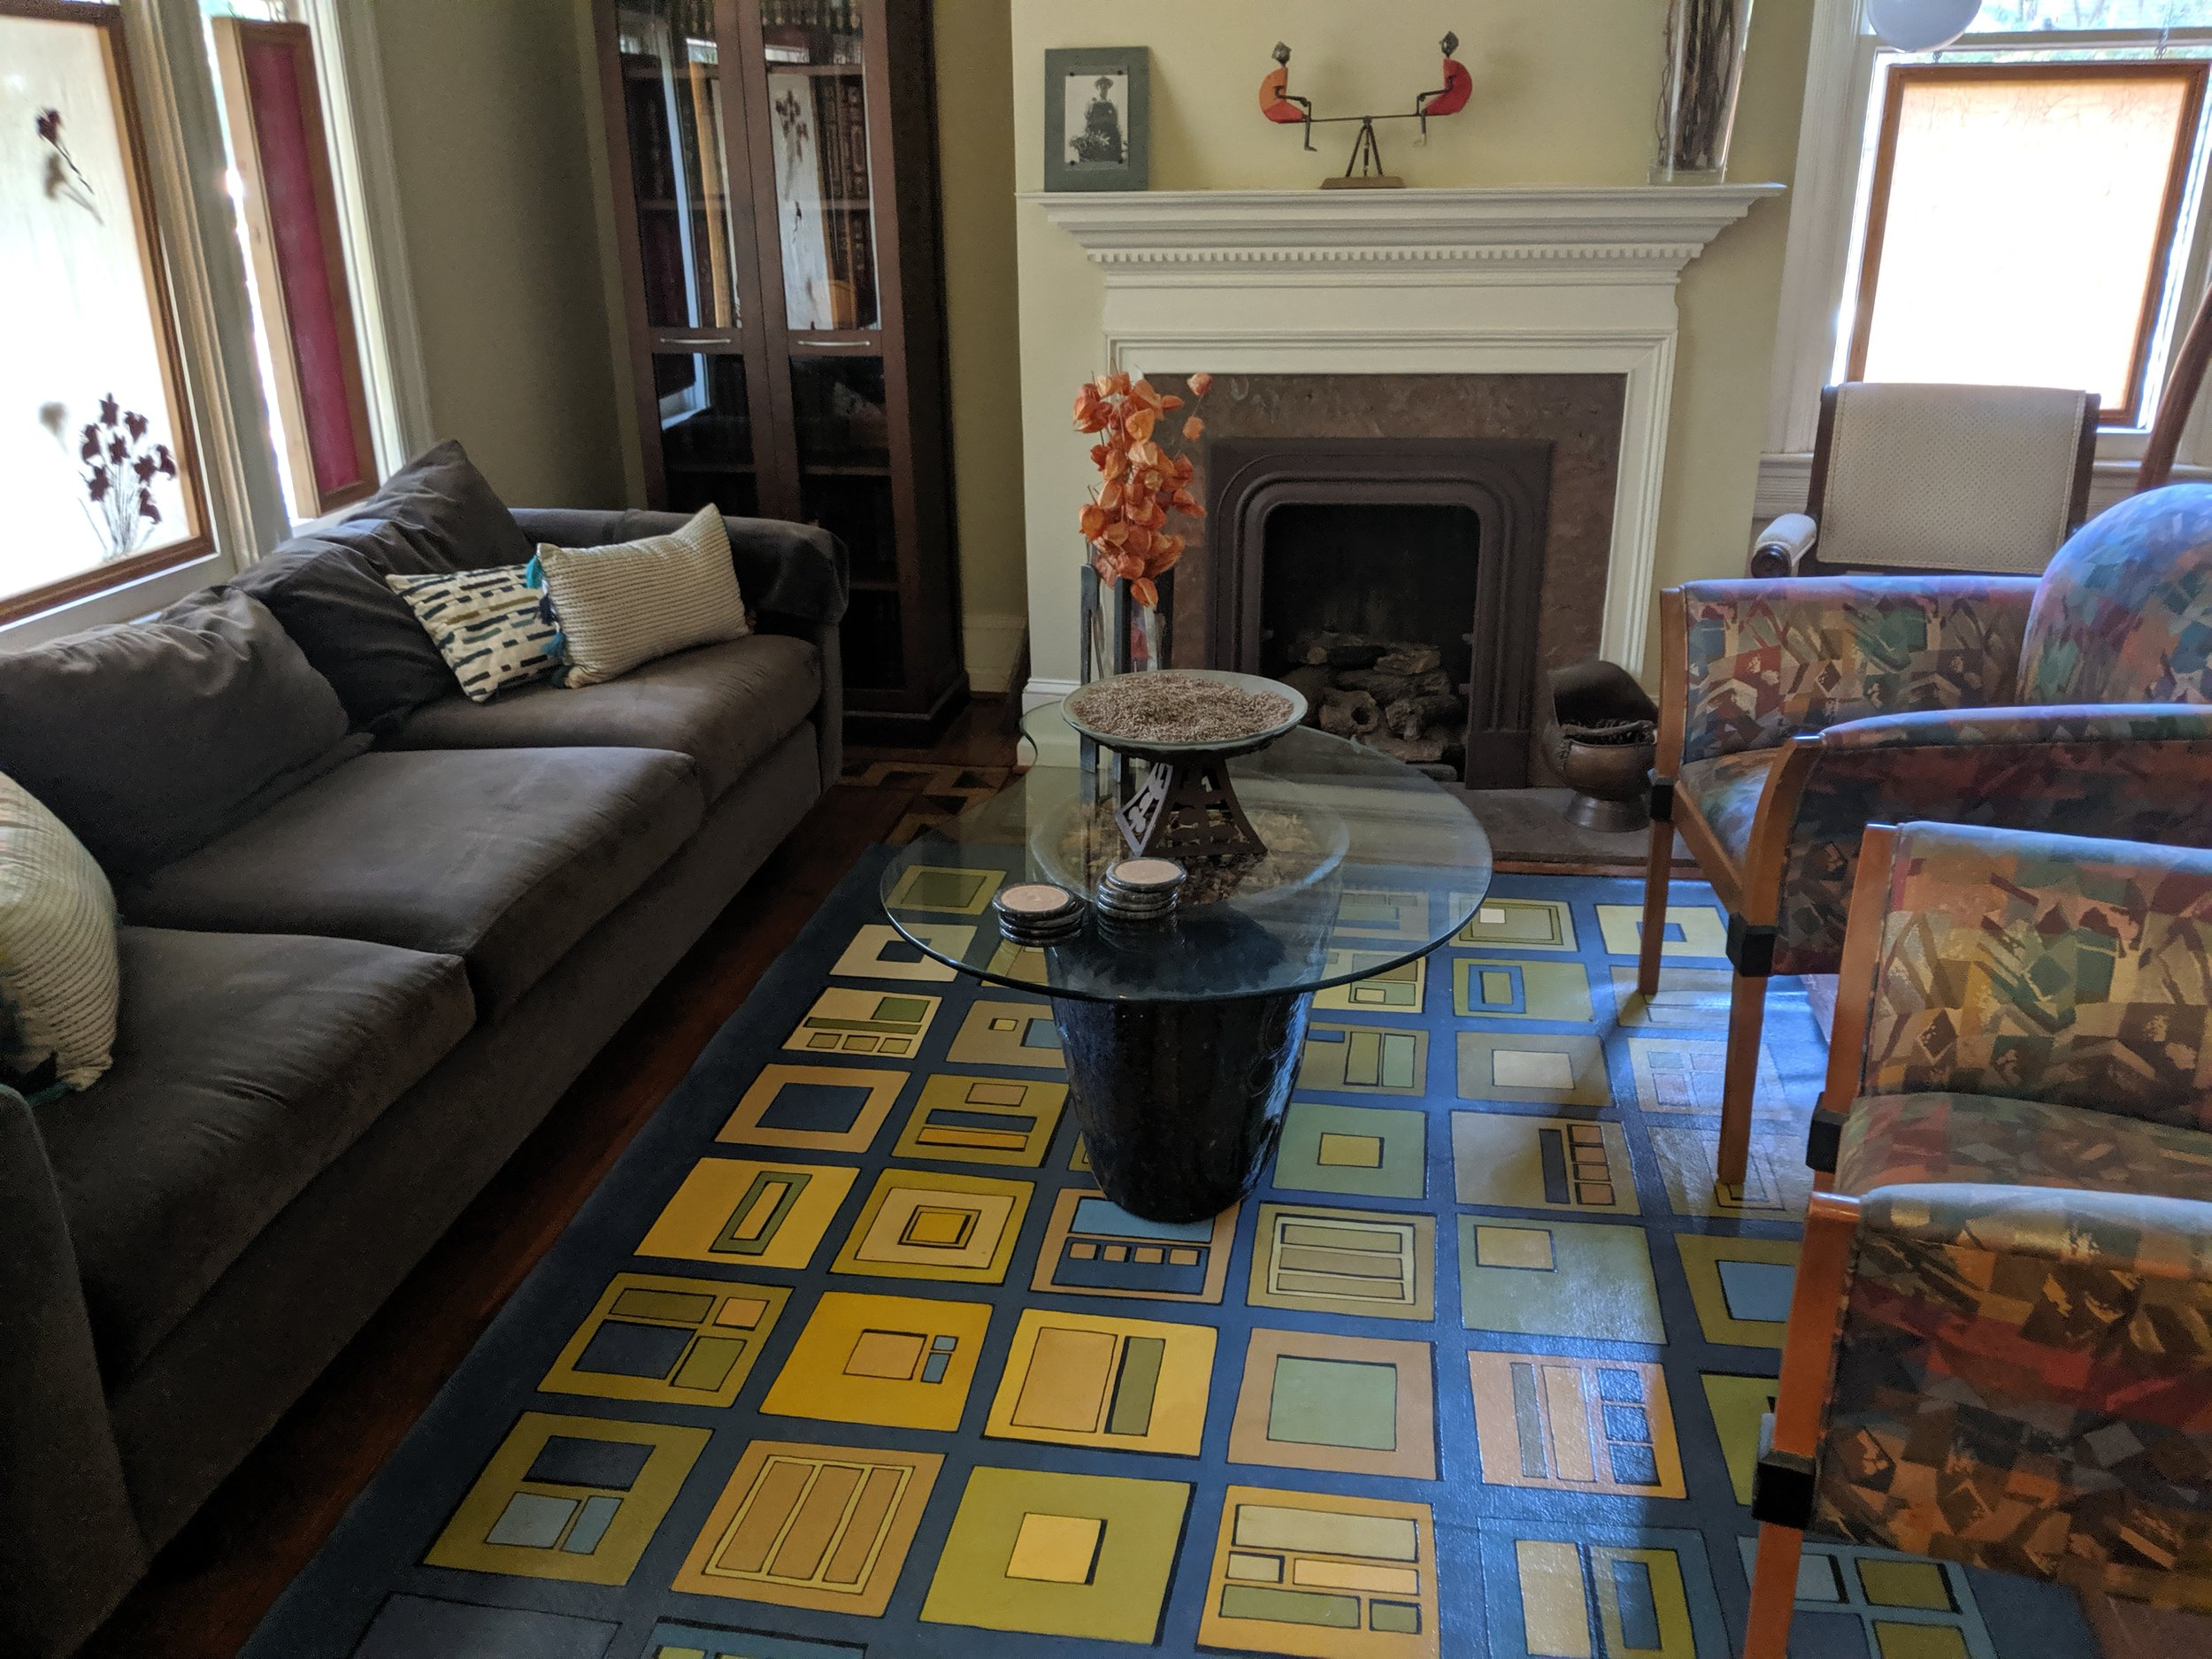 6' x 8' Painted floorcloth in a GraffitiMats design.